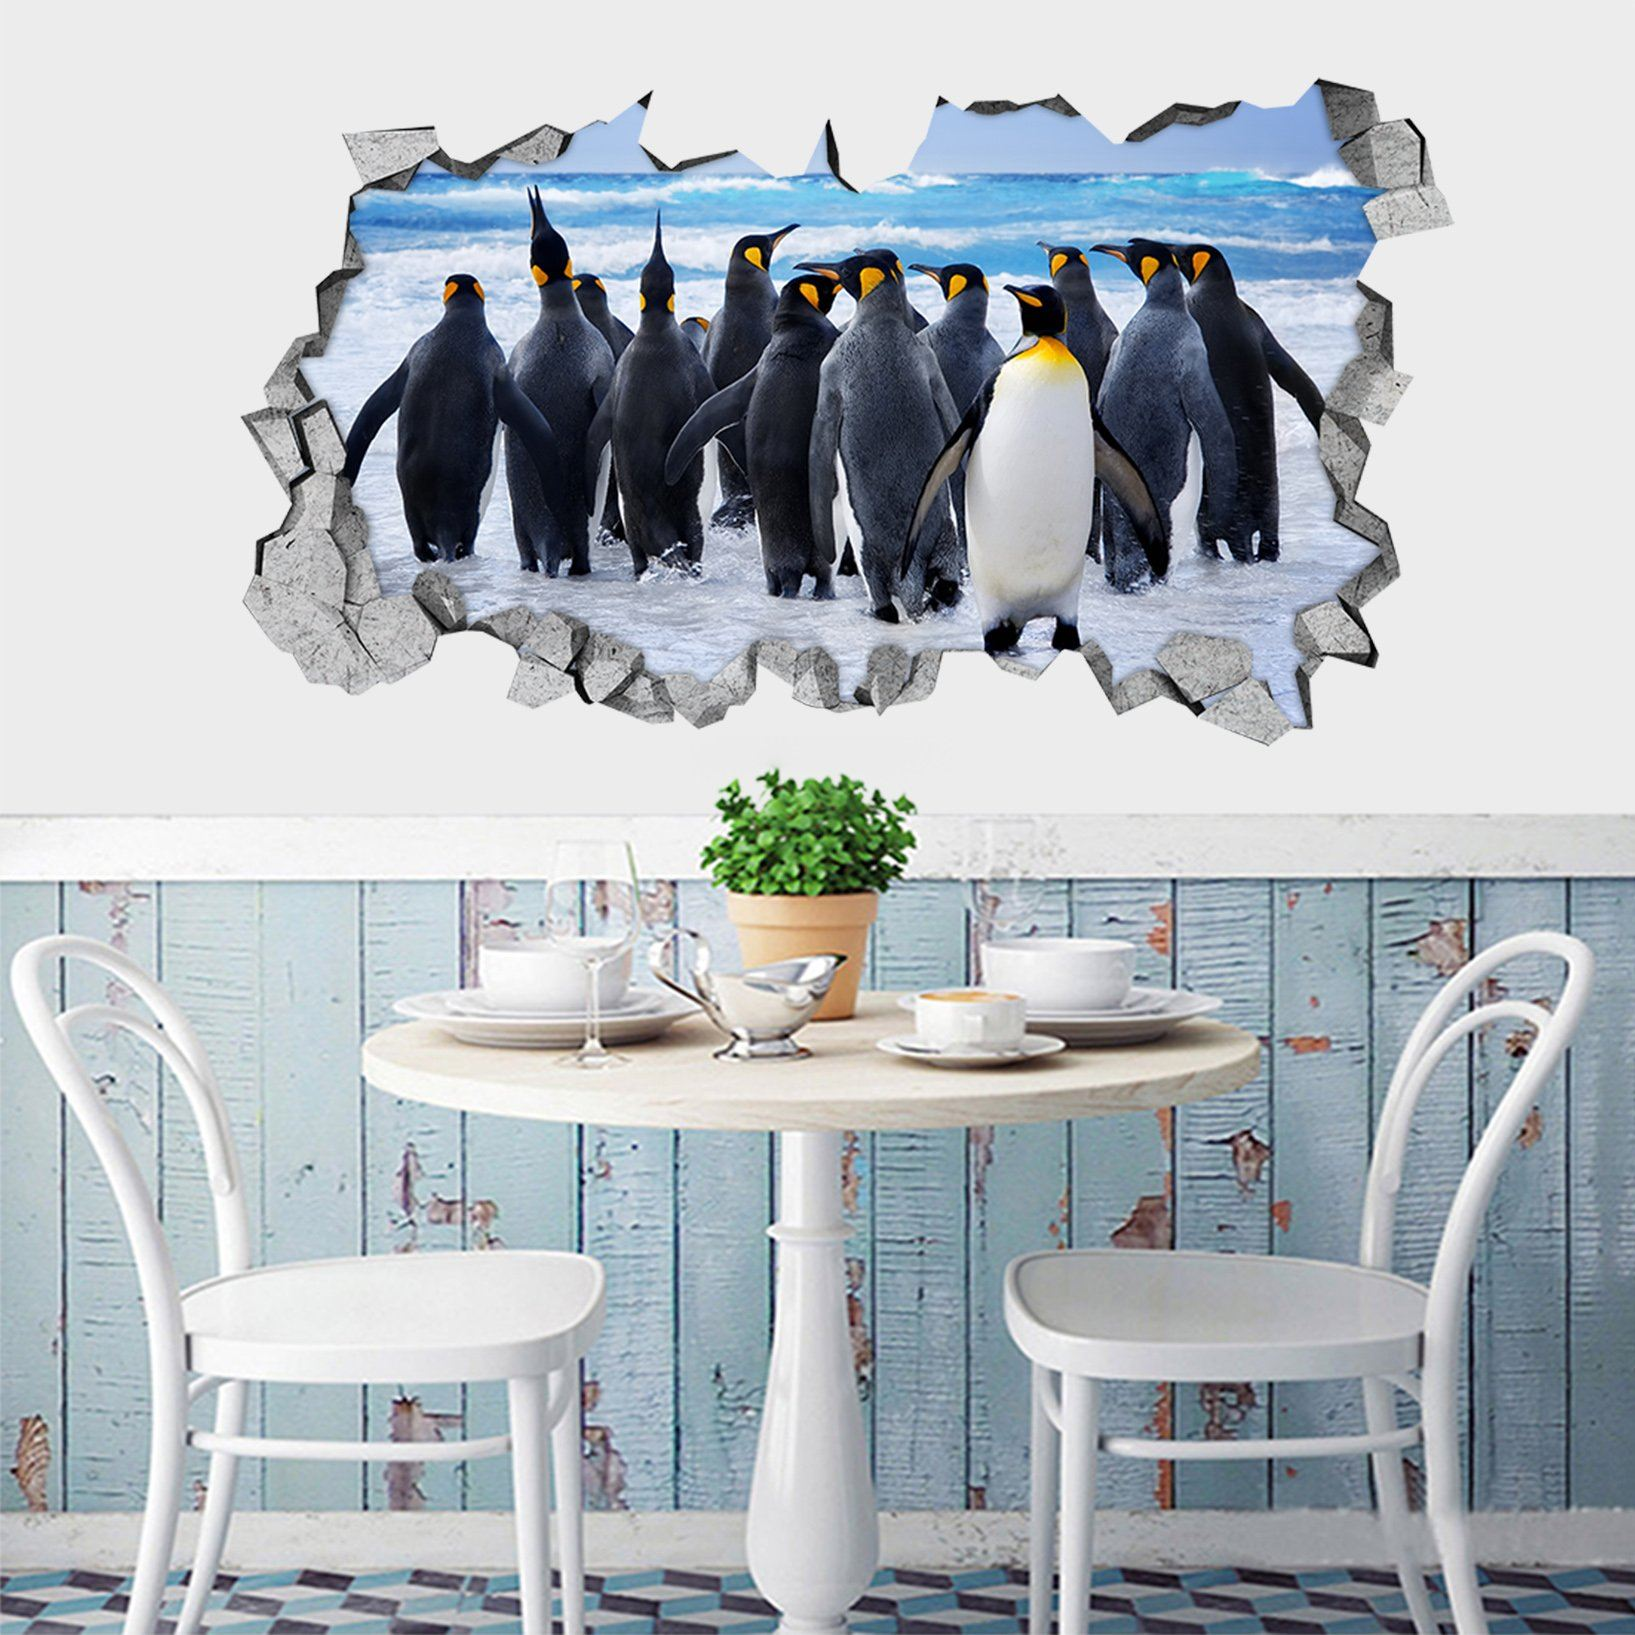 3D Seaside Penguins 148 Broken Wall Murals